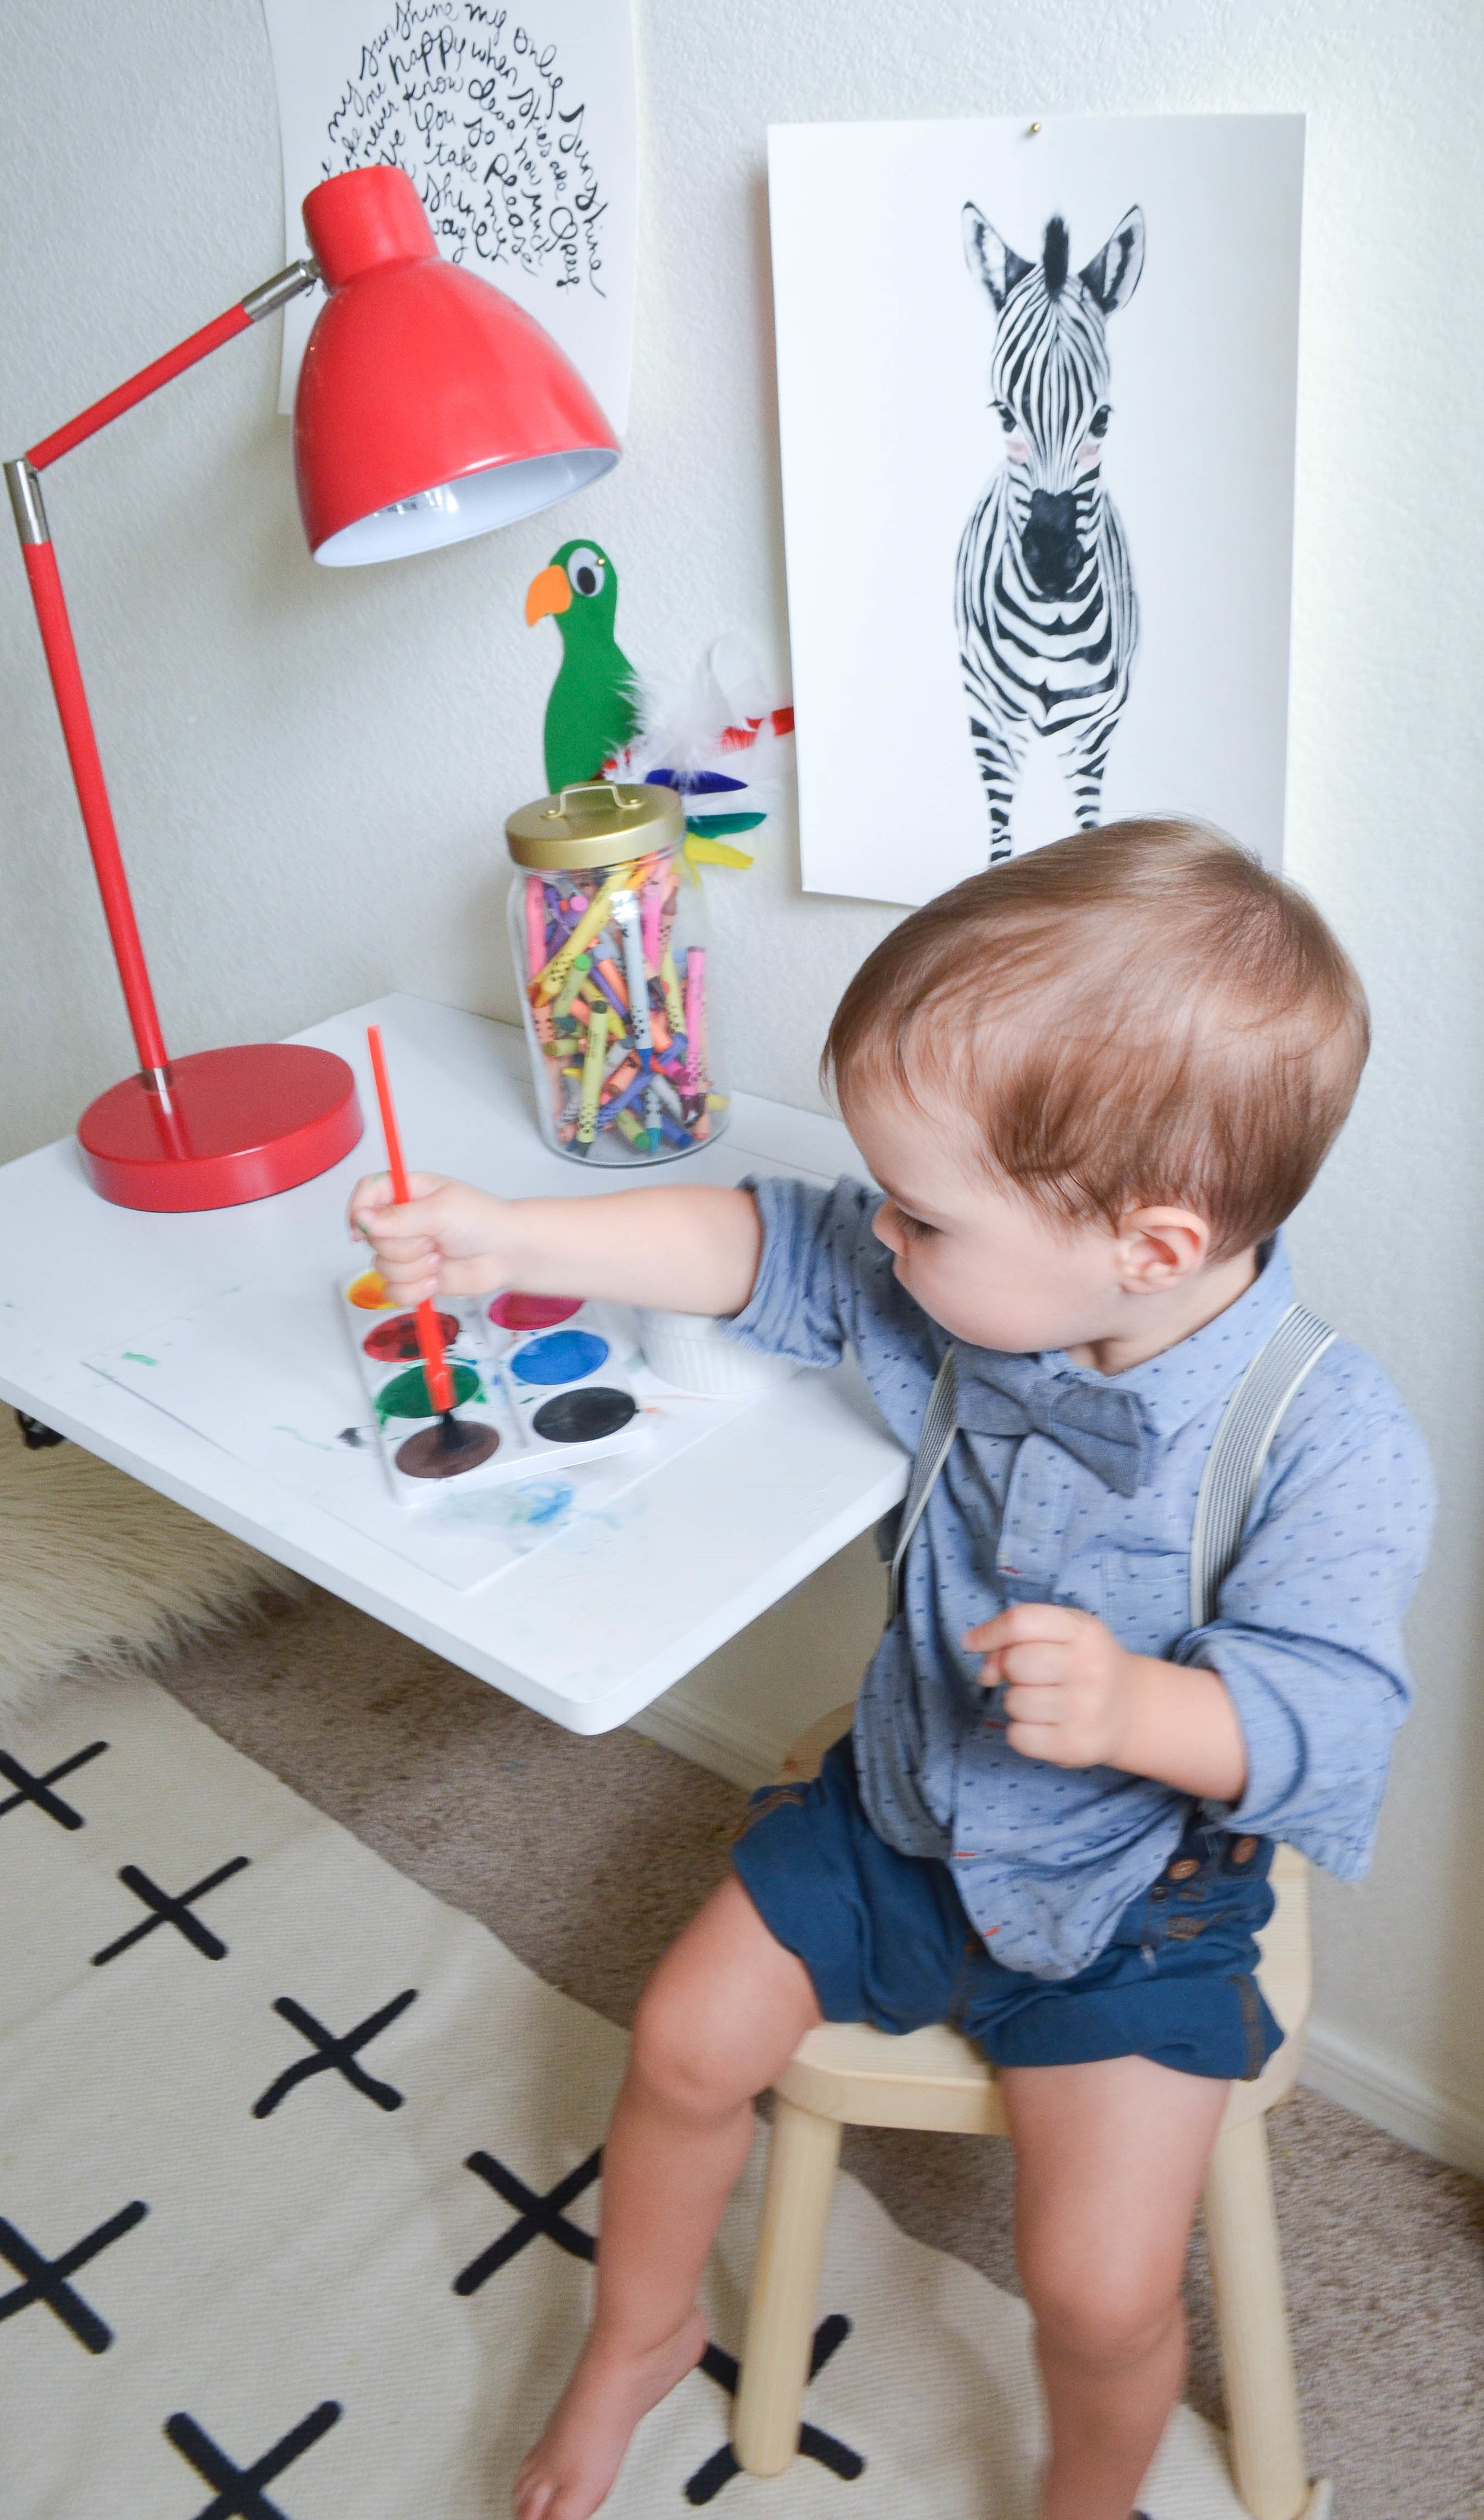 http://www.mommasociety.com/momma-society/the-big-reveal-under-the-stairs-play-closet